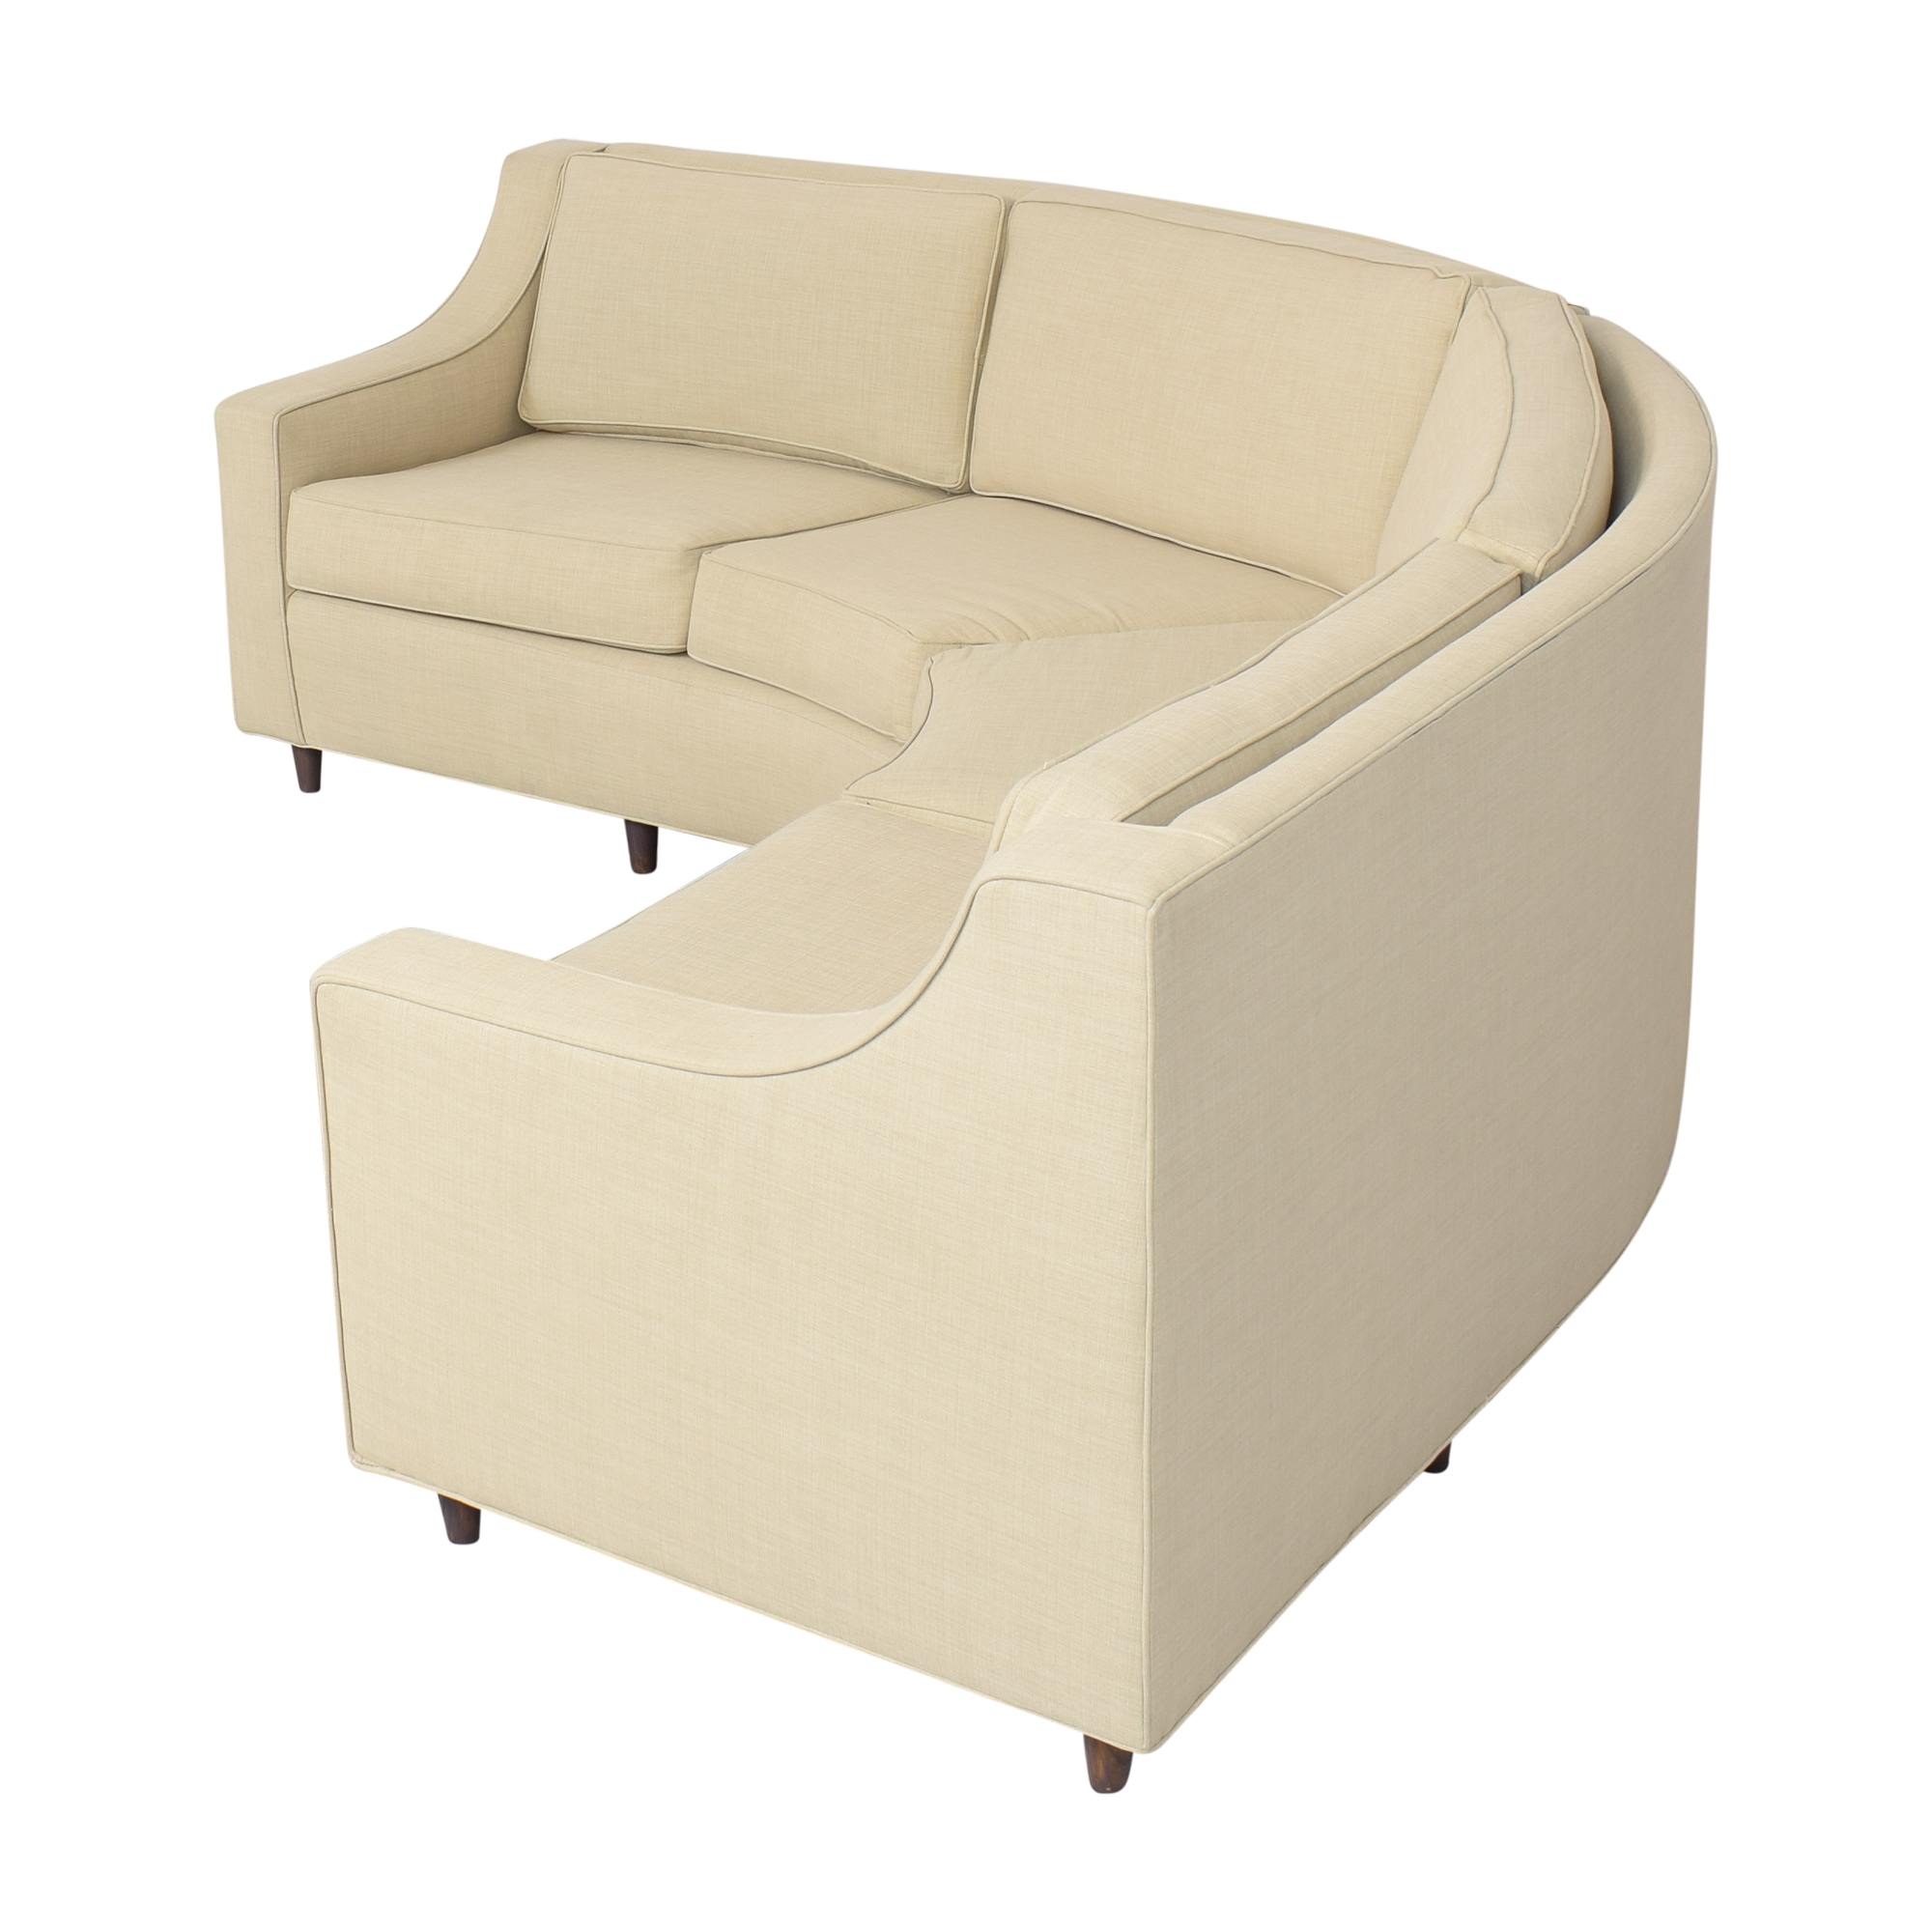 89 off stonebrook interiors stonebrook interiors mid century curved sectional sofa sofas